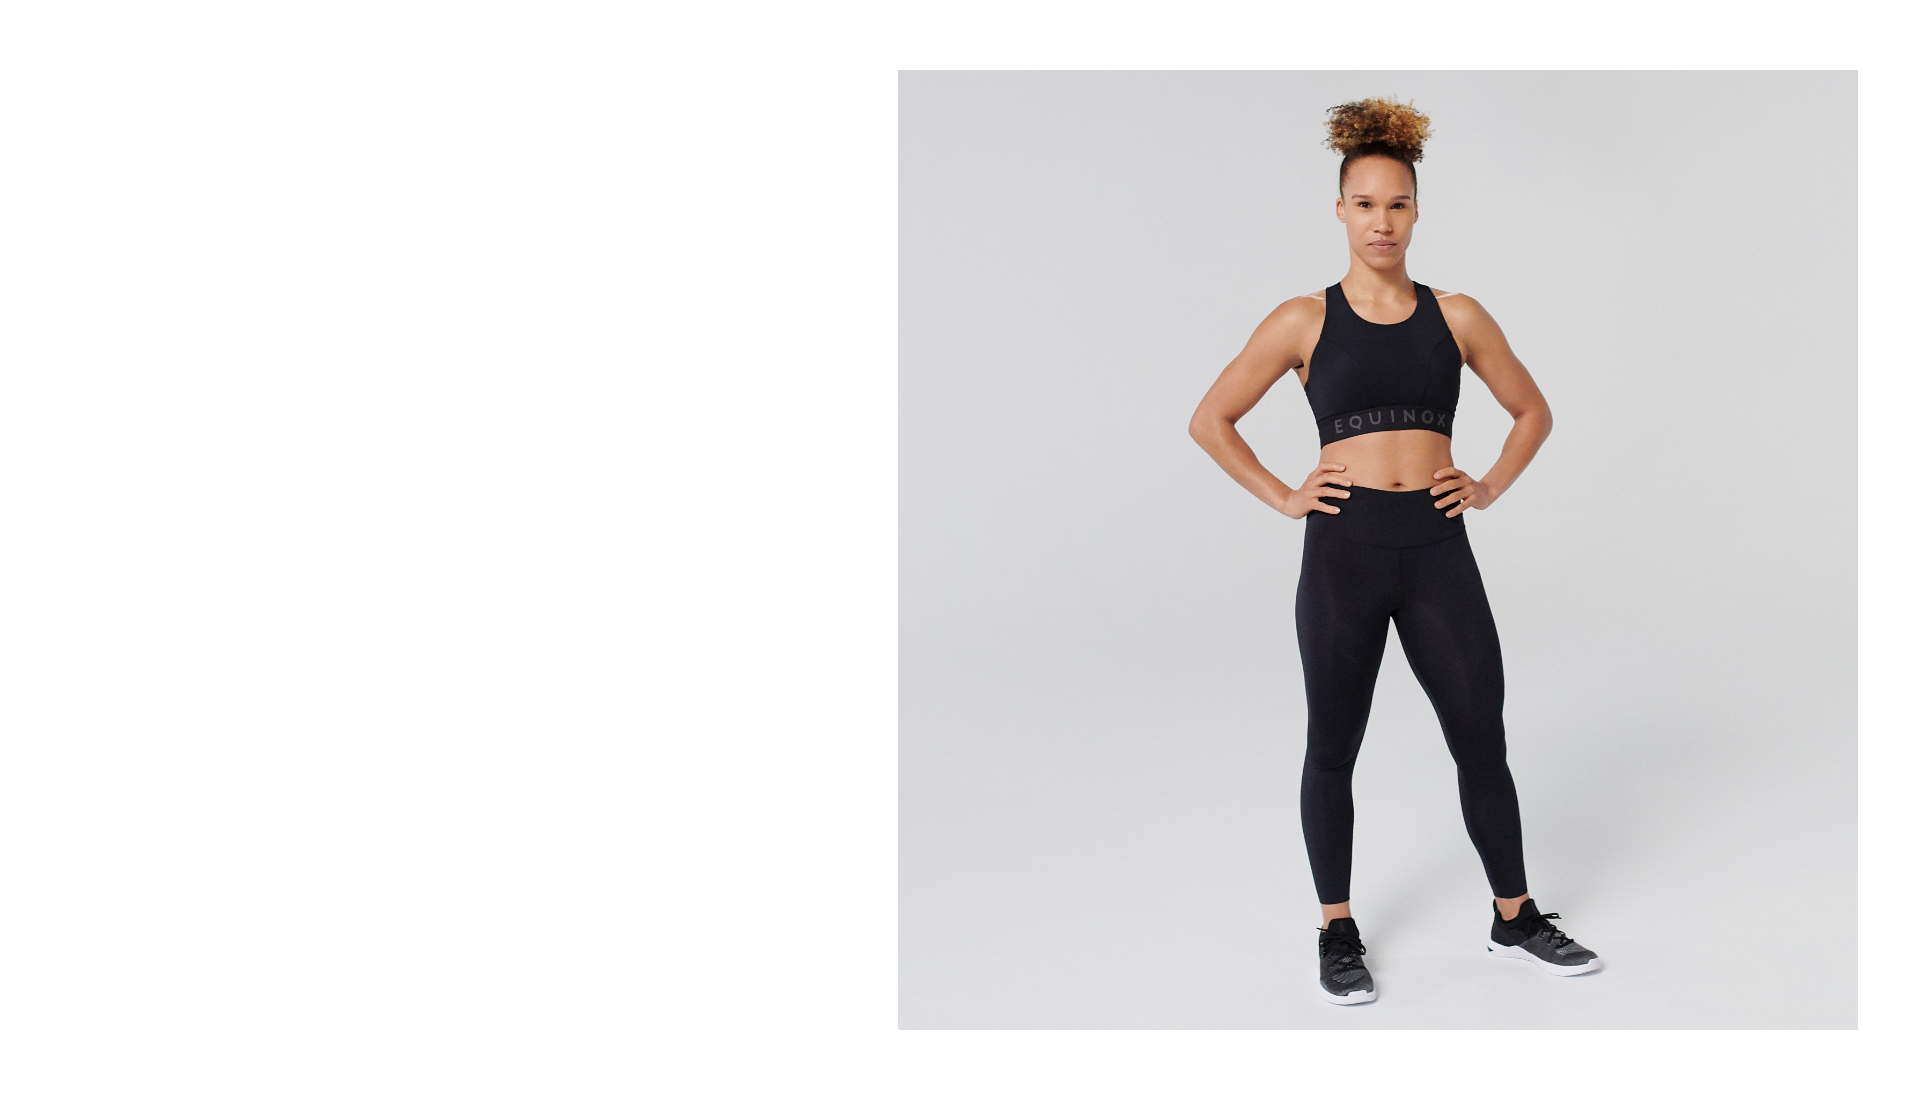 8356b99f47f83 Athletic Clothing Stores, Fitness Clothing Boutique - Equinox Shop